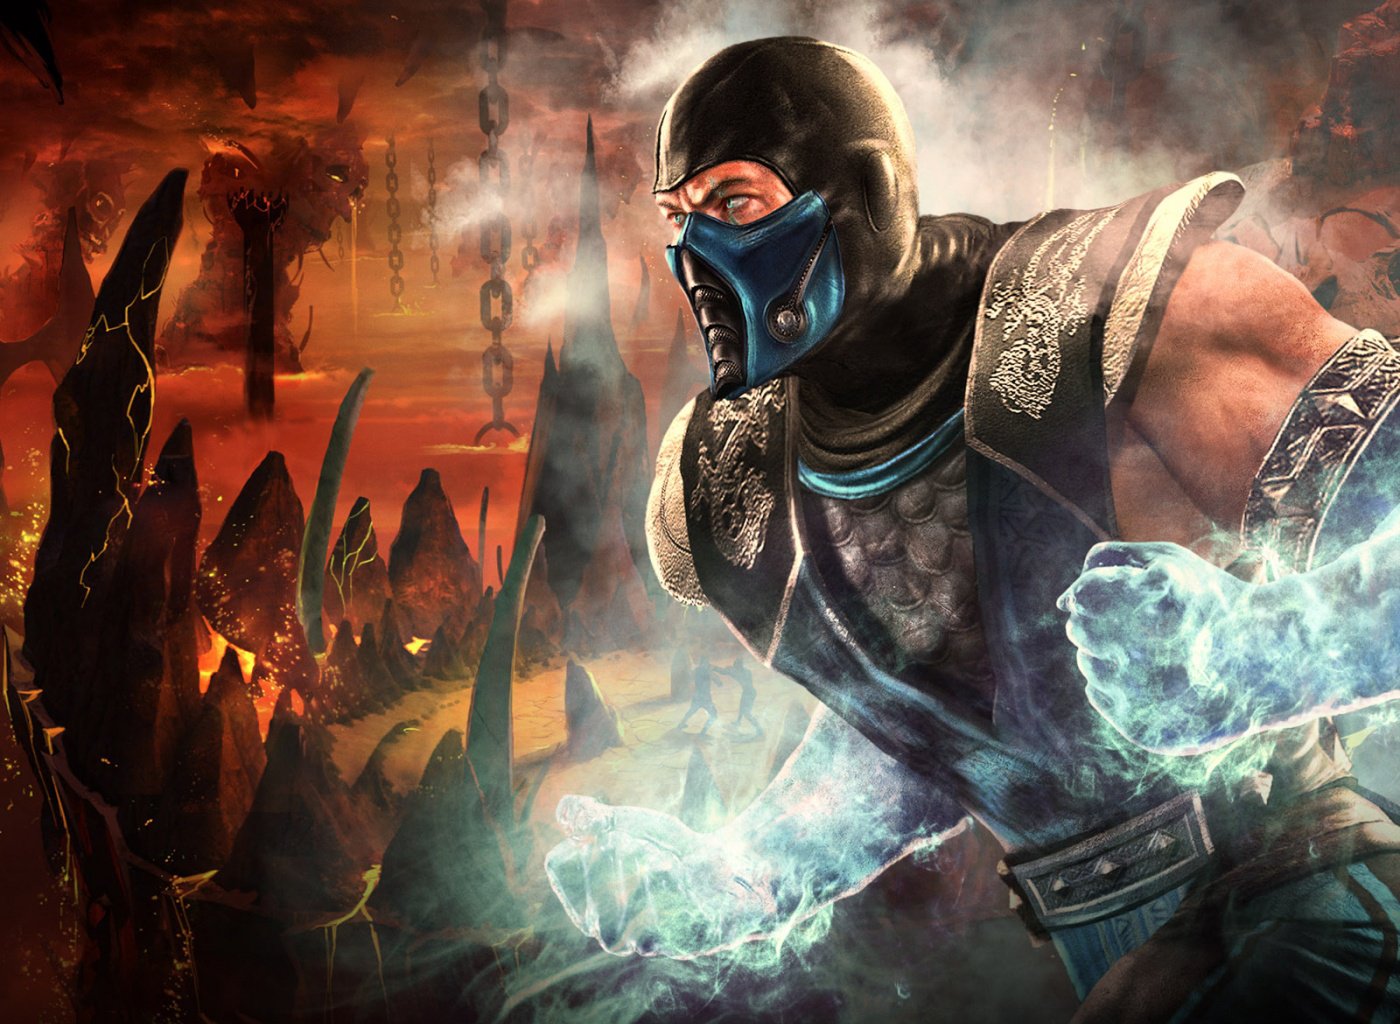 Background image vs img - Sub Zero Mortal Kombat Vs Dc Universe Dcuo Wallpaper Background Warner Bros Midway Fighting Game Img Image Picture Pic